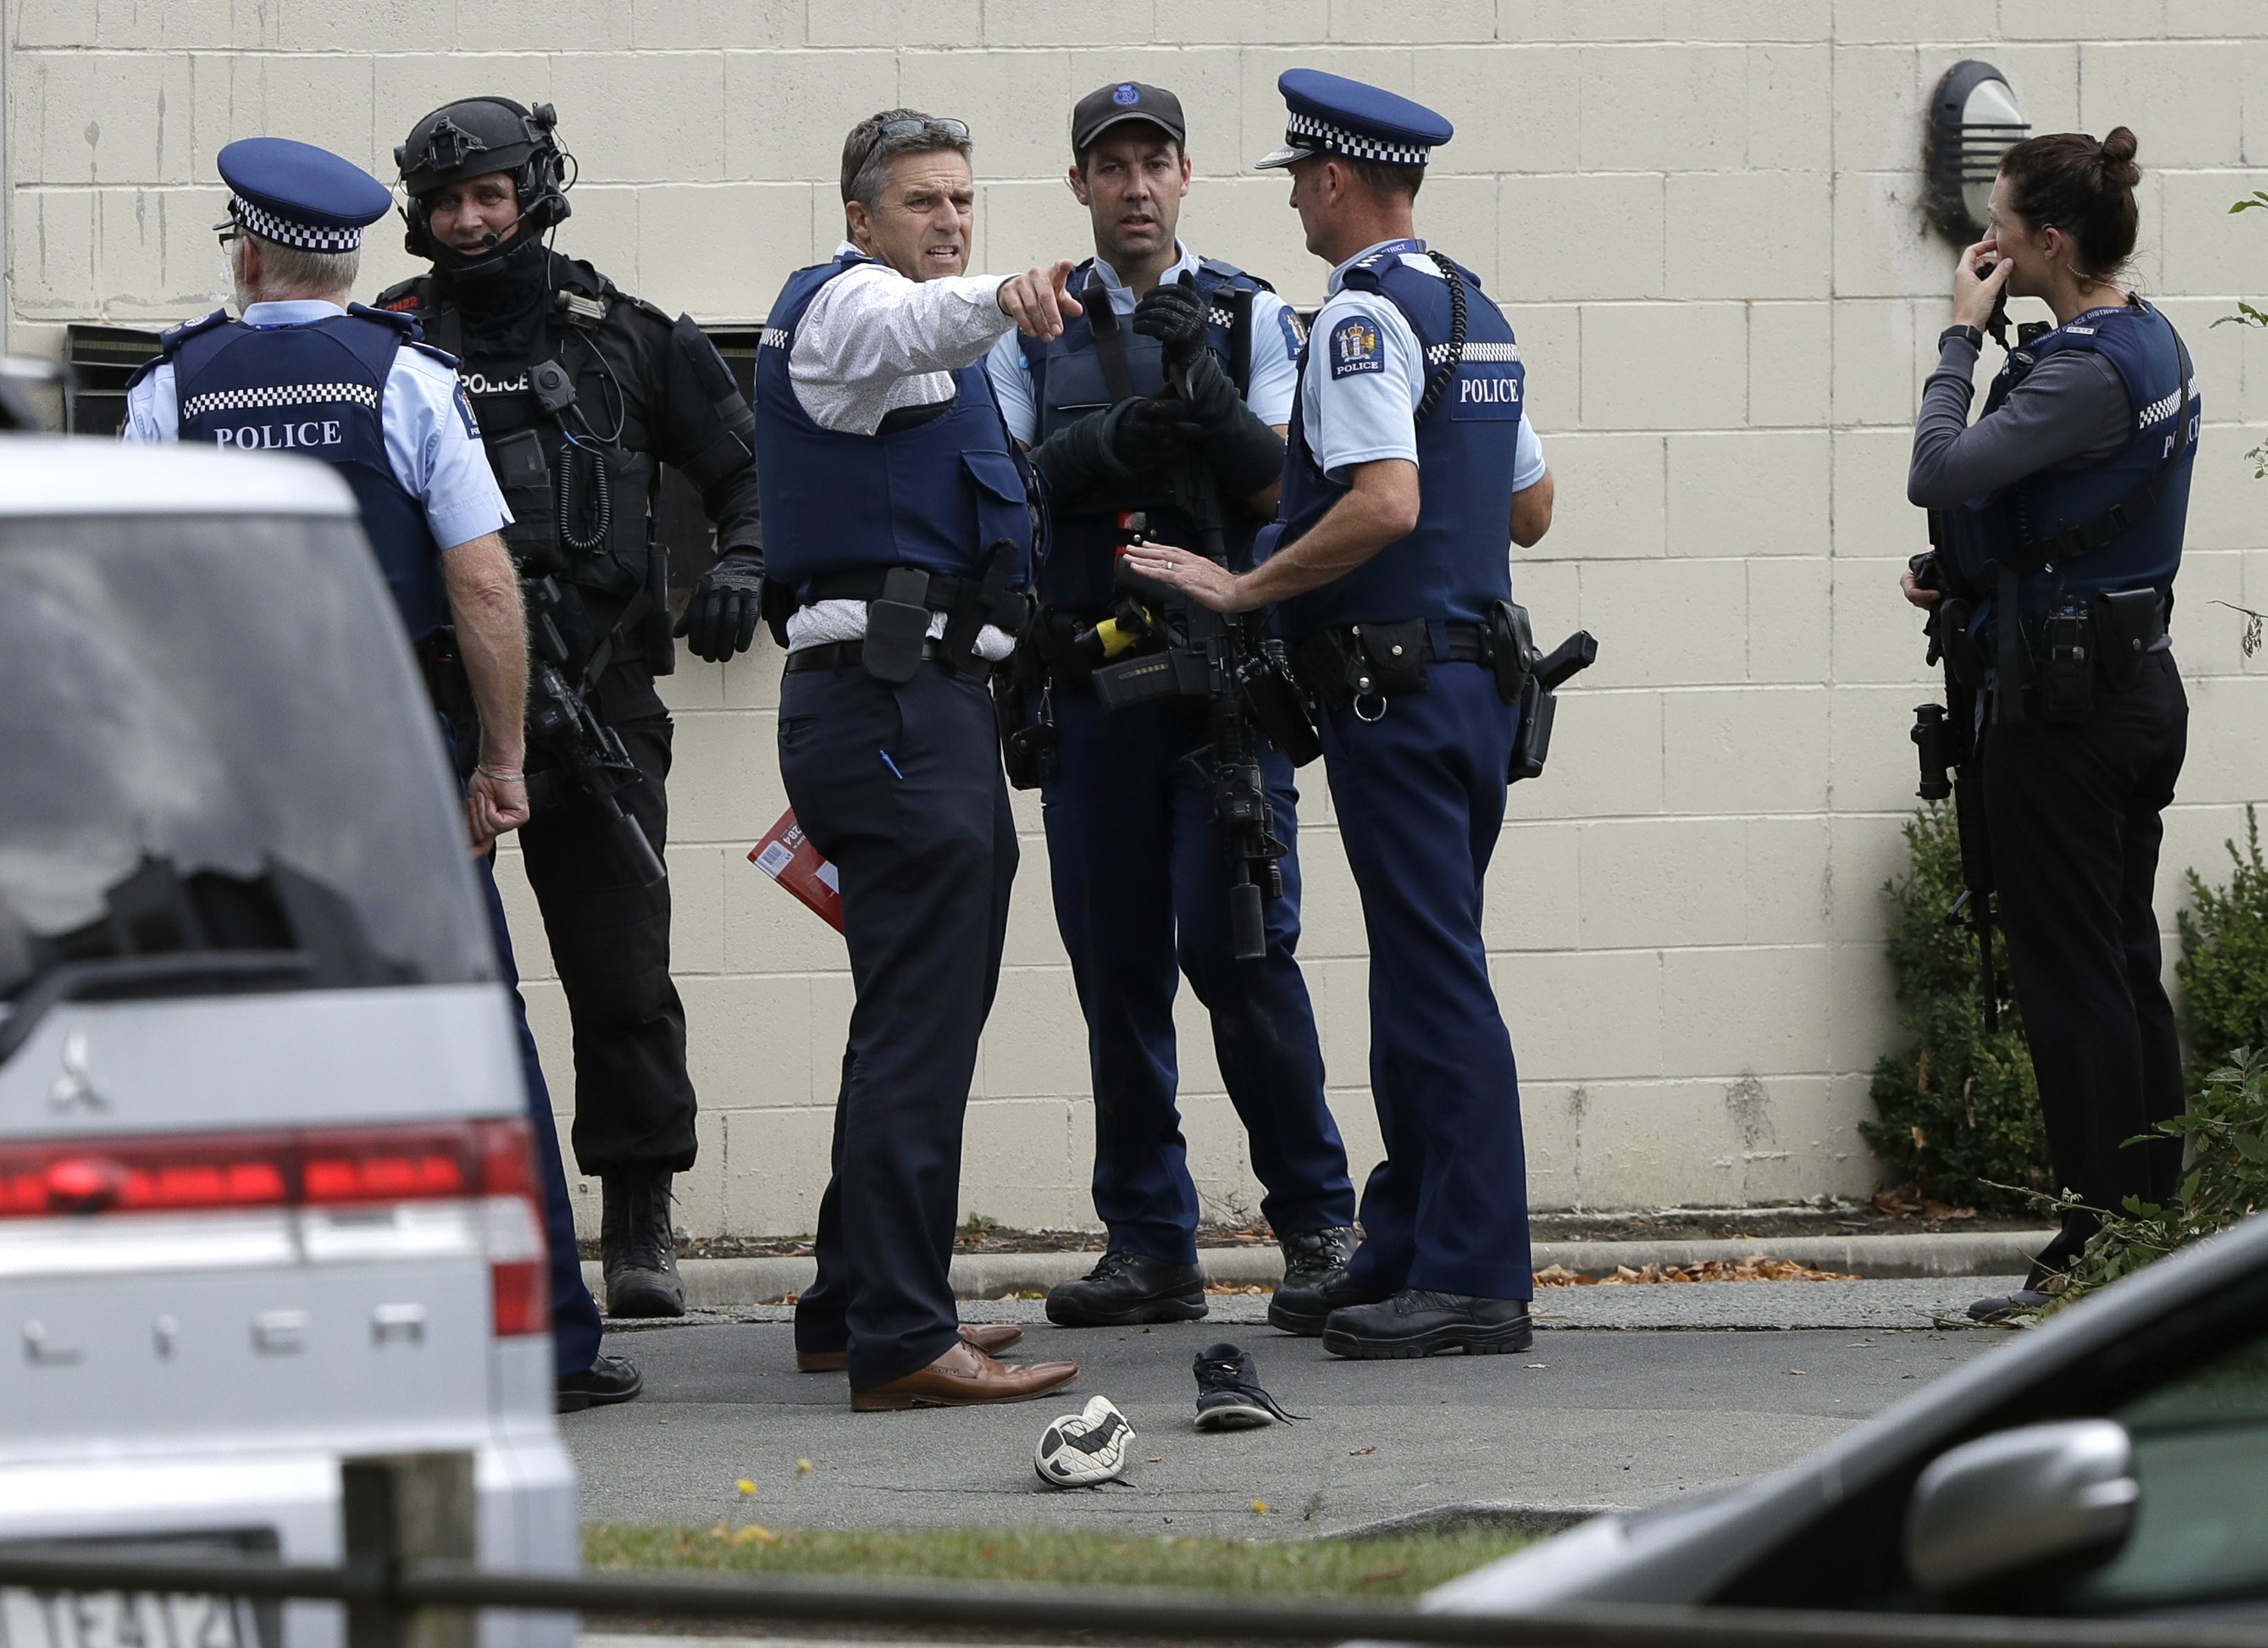 Nz Shooter Detail: Timeline Of Police Response To New Zealand Mosque Attacks